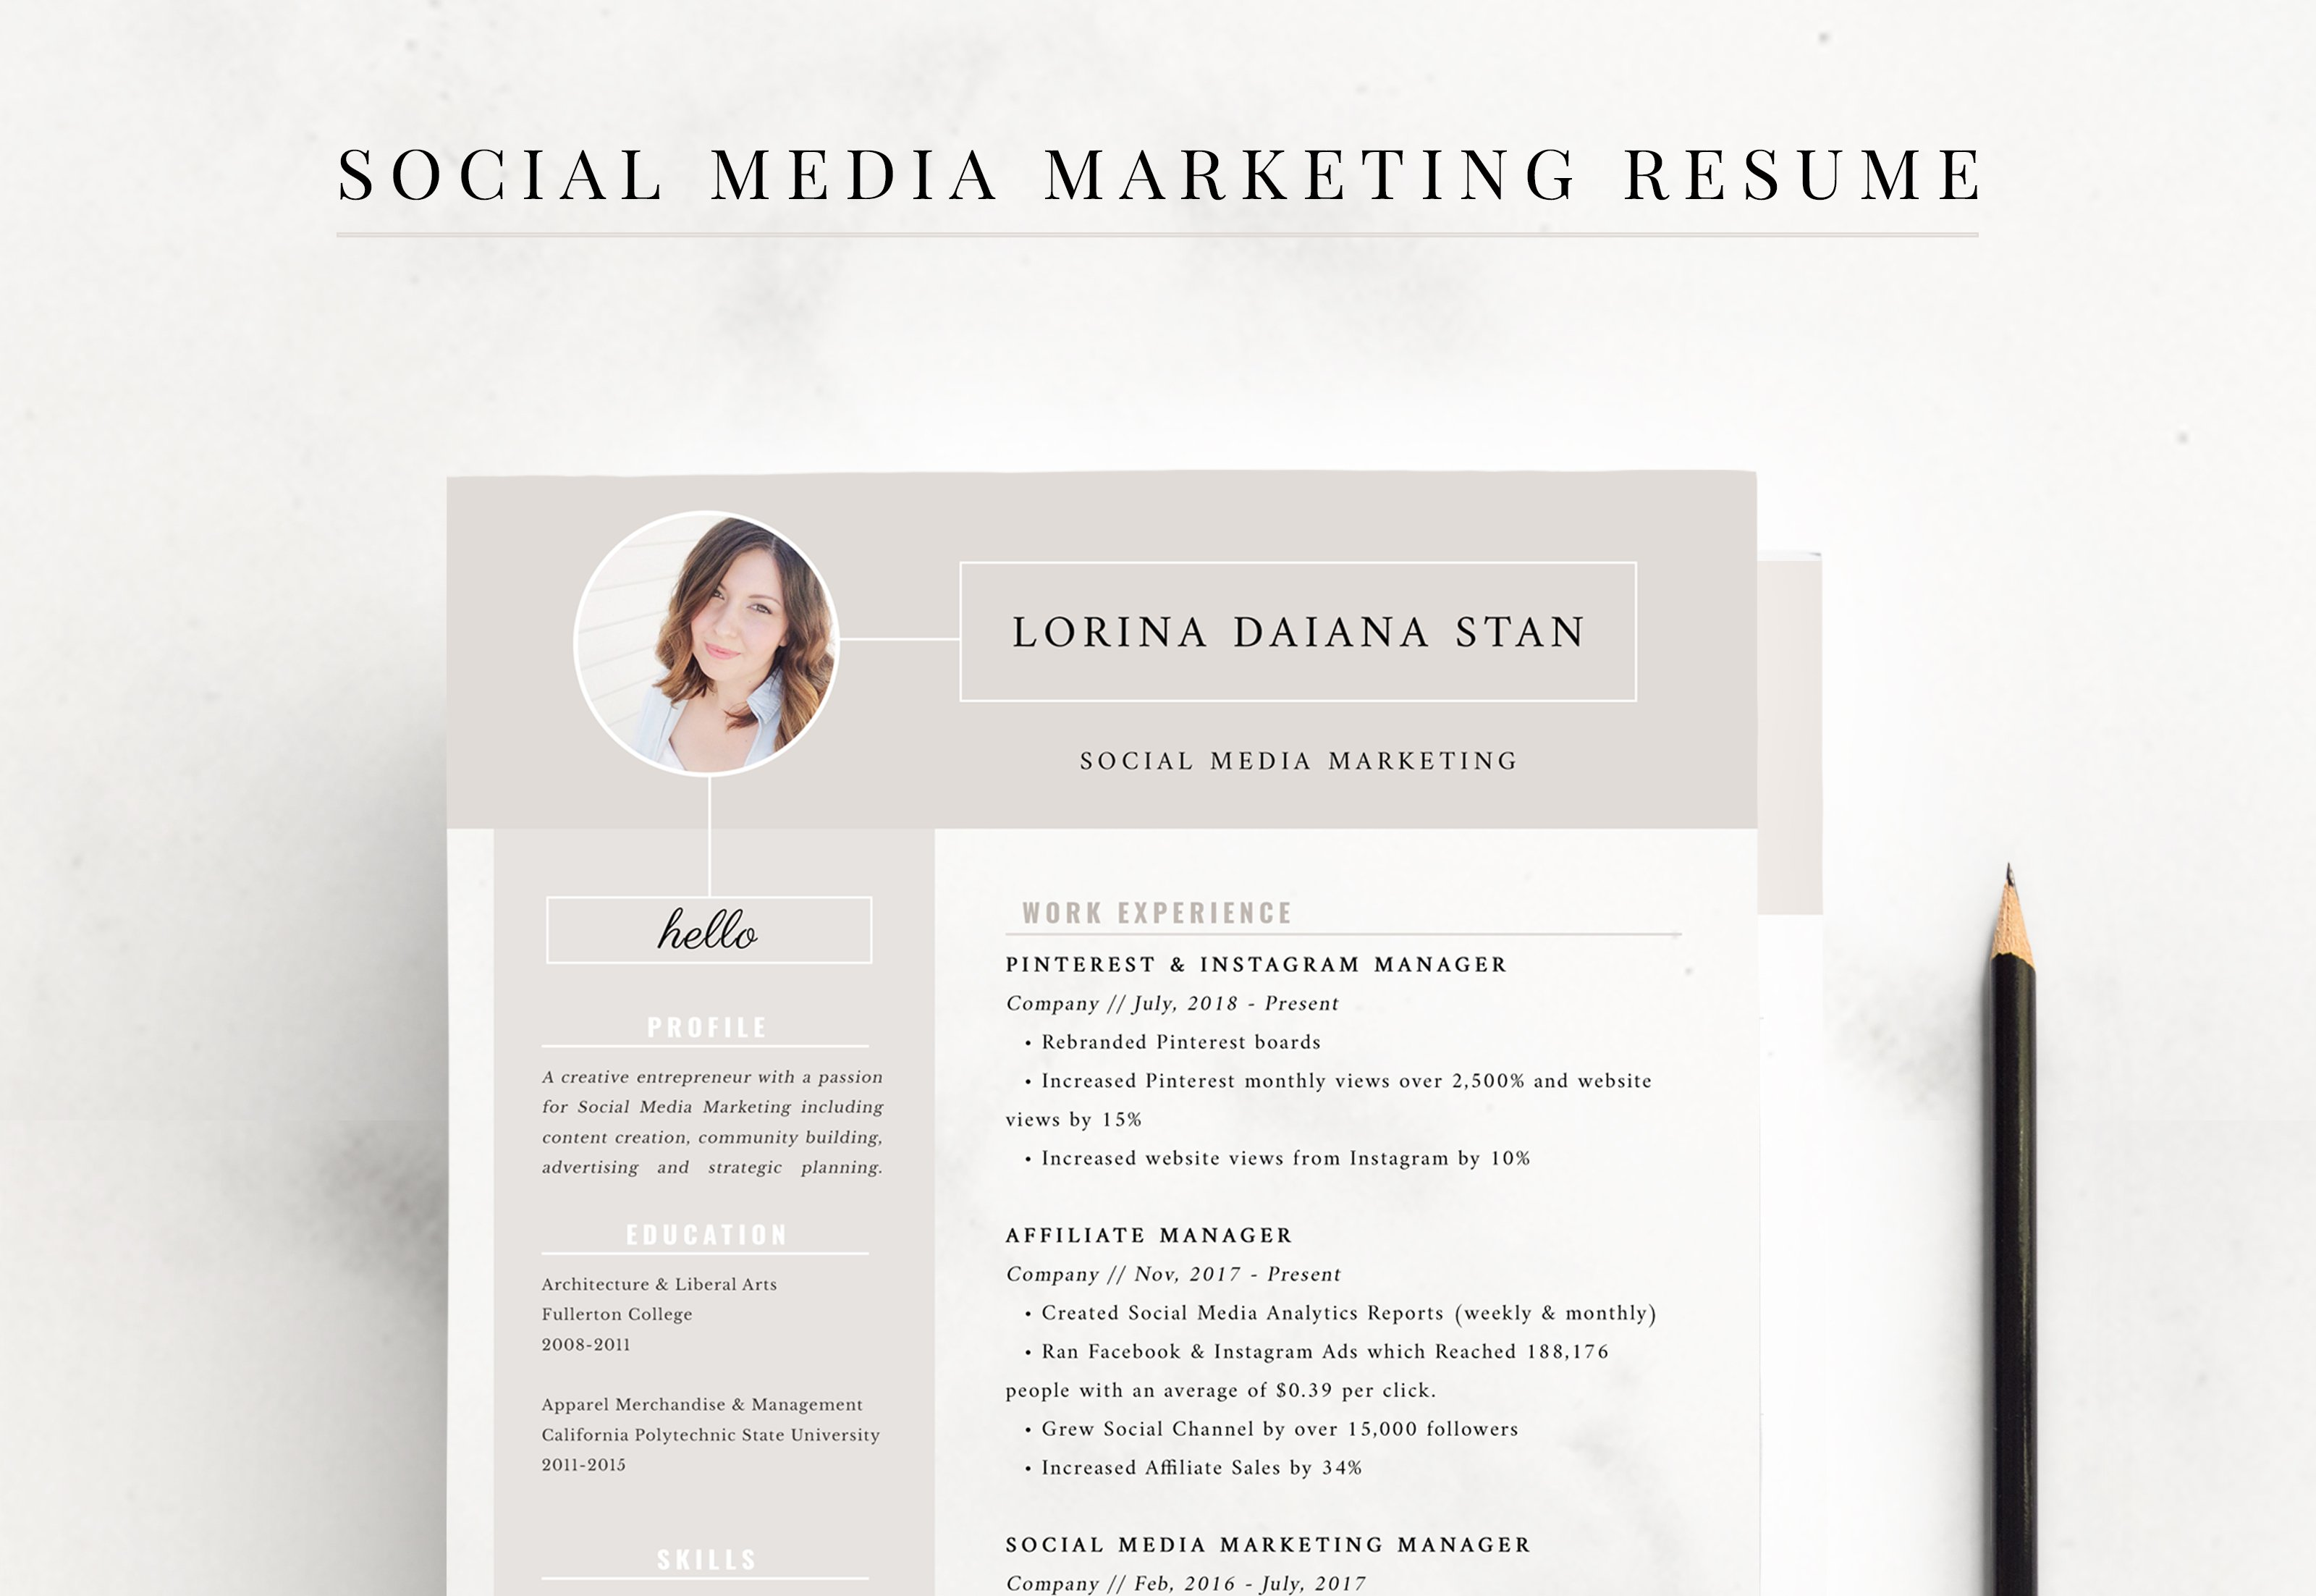 Resume: Social Media Marketing